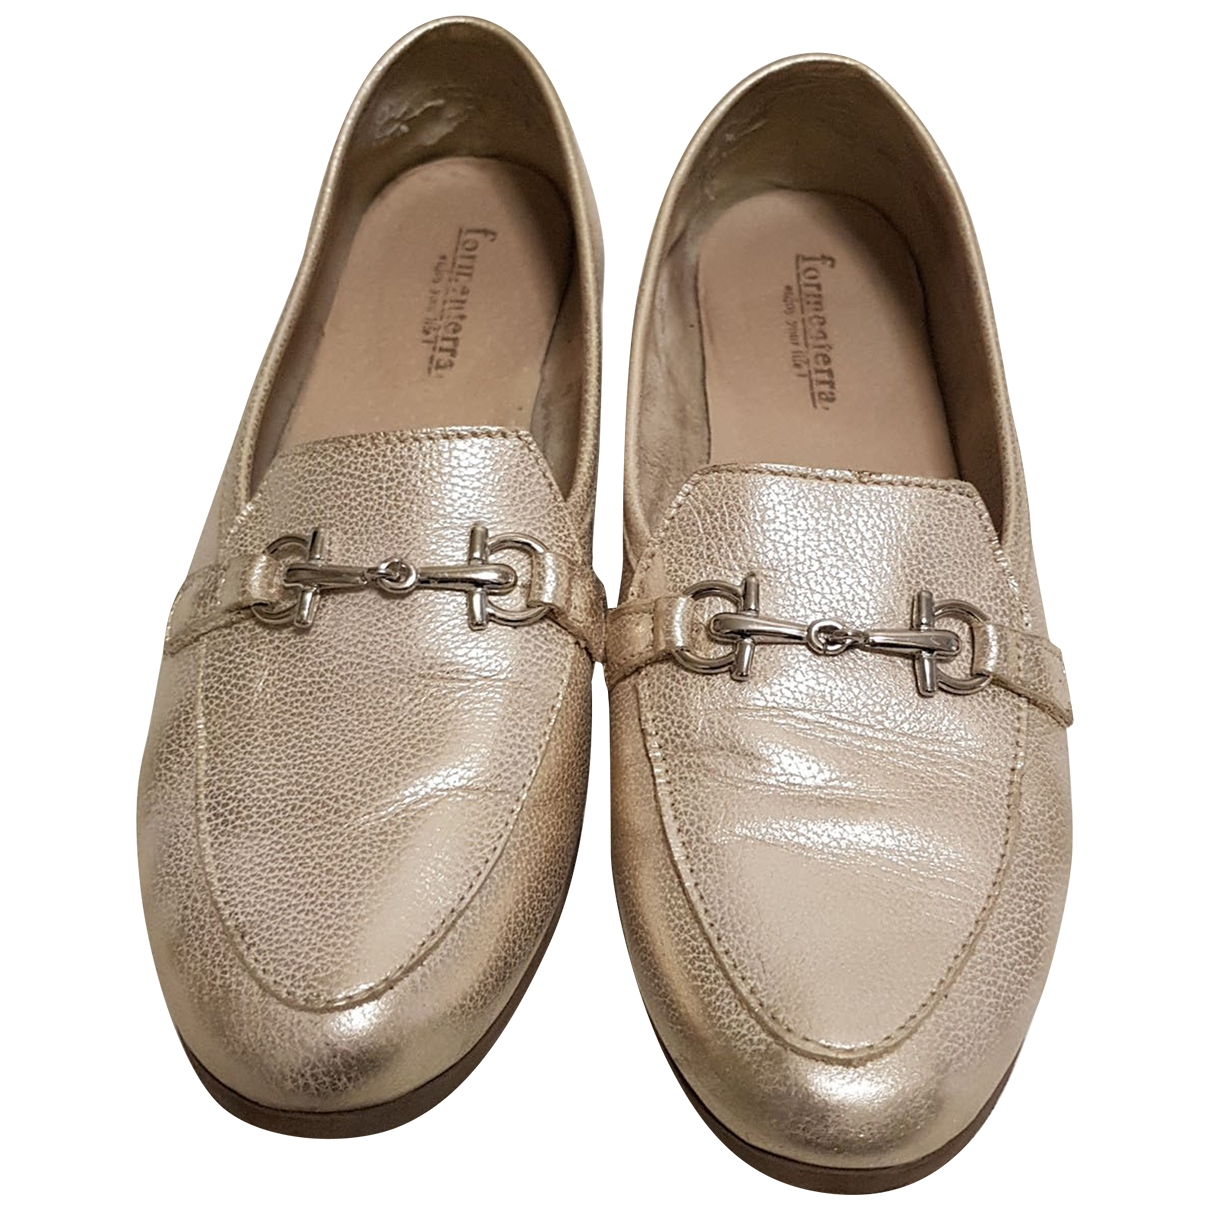 Non Signé / Unsigned Hippie Chic Leather Flats for Women 38 EU